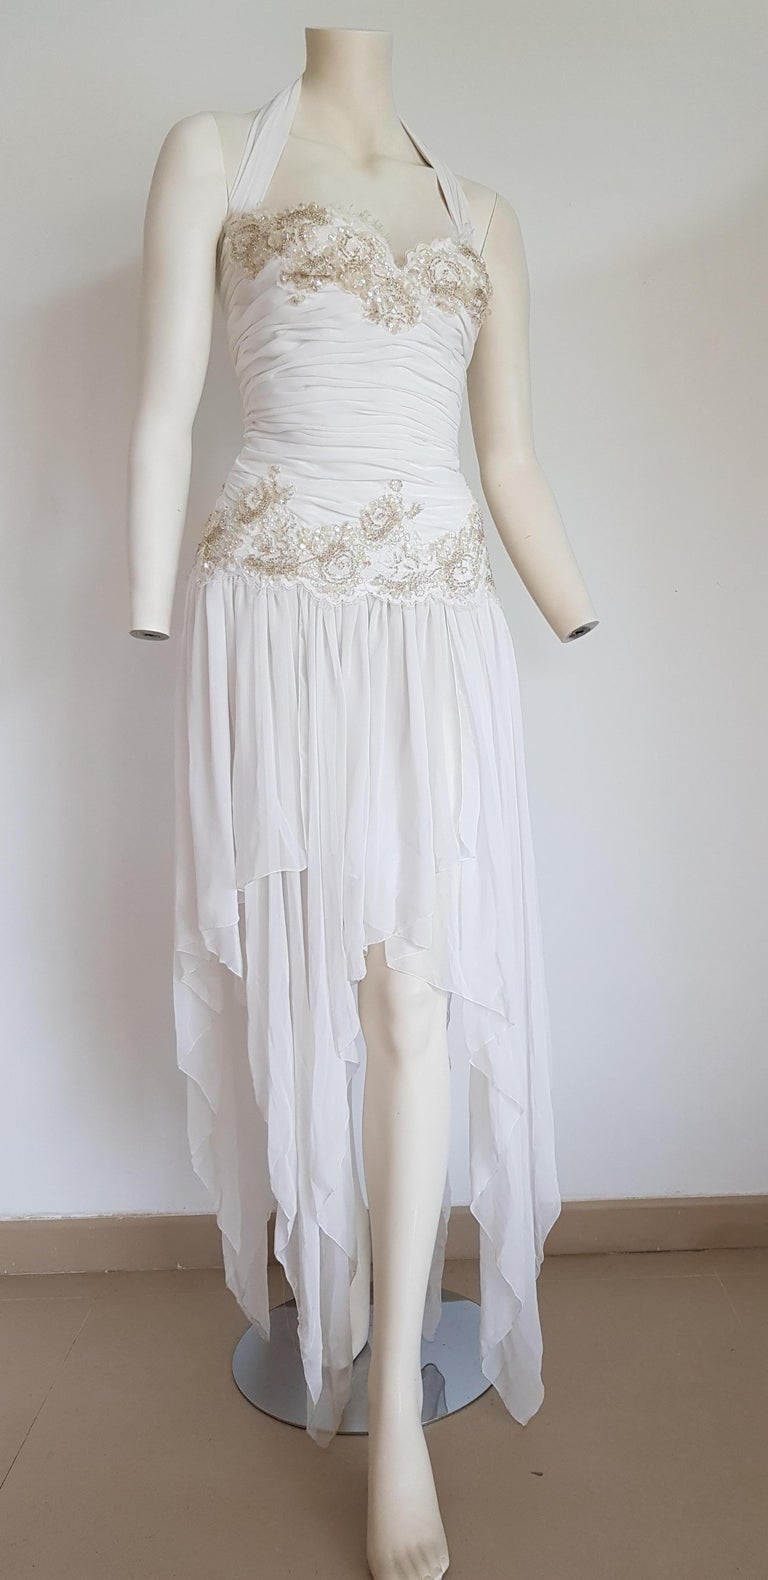 Isabelle ALLARD Paris Couture chiffon irregular hem skirt, sequins, embroidery, sleeveless silk and cotton white dress - Created in his atelier on Rue Saint-Honoré, Paris - Unworn, New.  Isabelle ALLARD is a Paris brand that created only haute